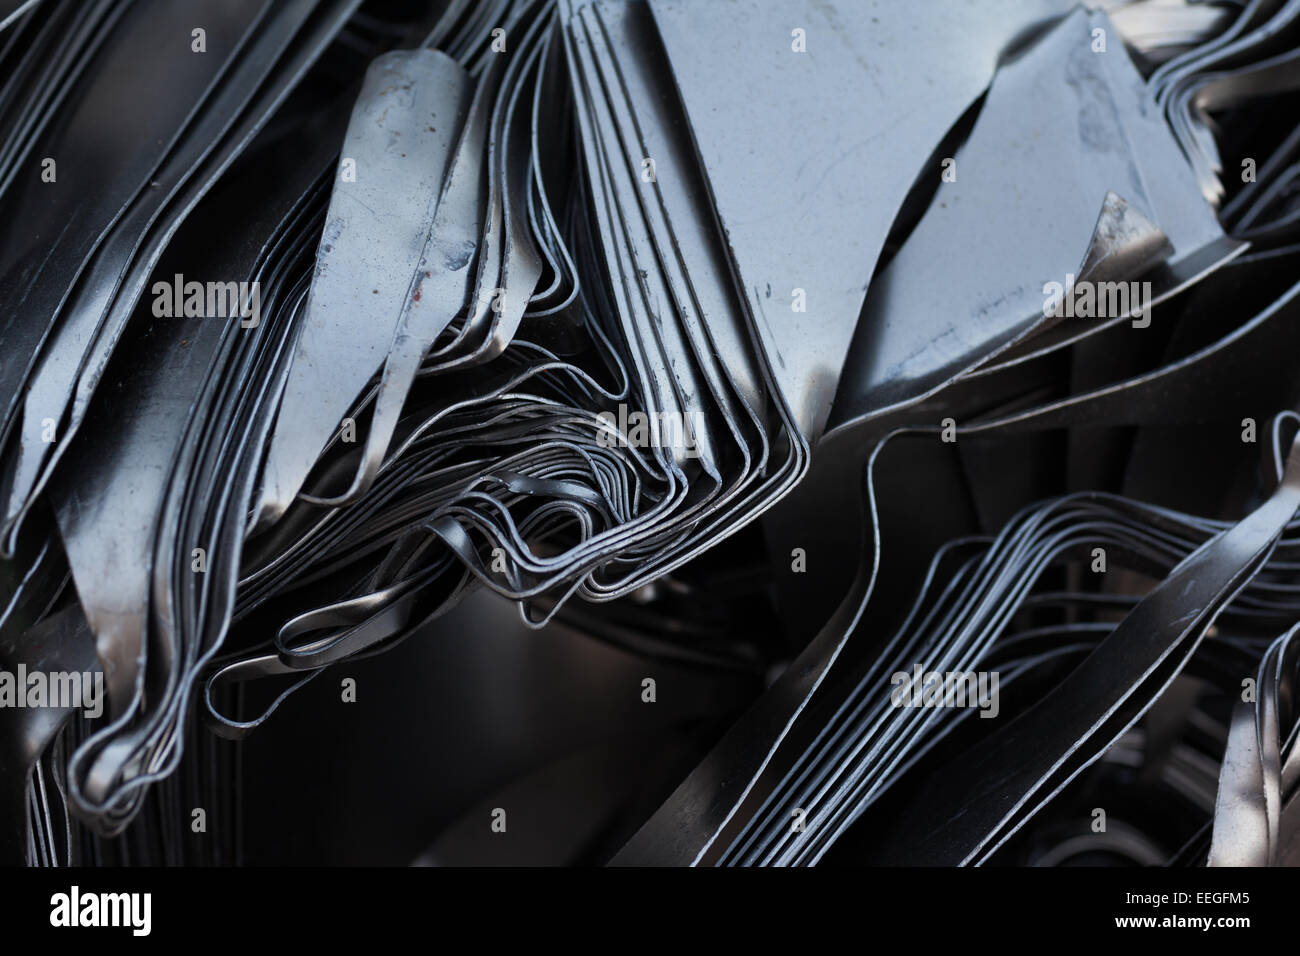 pressed metal plates for recycling. abstract background Stock Photo